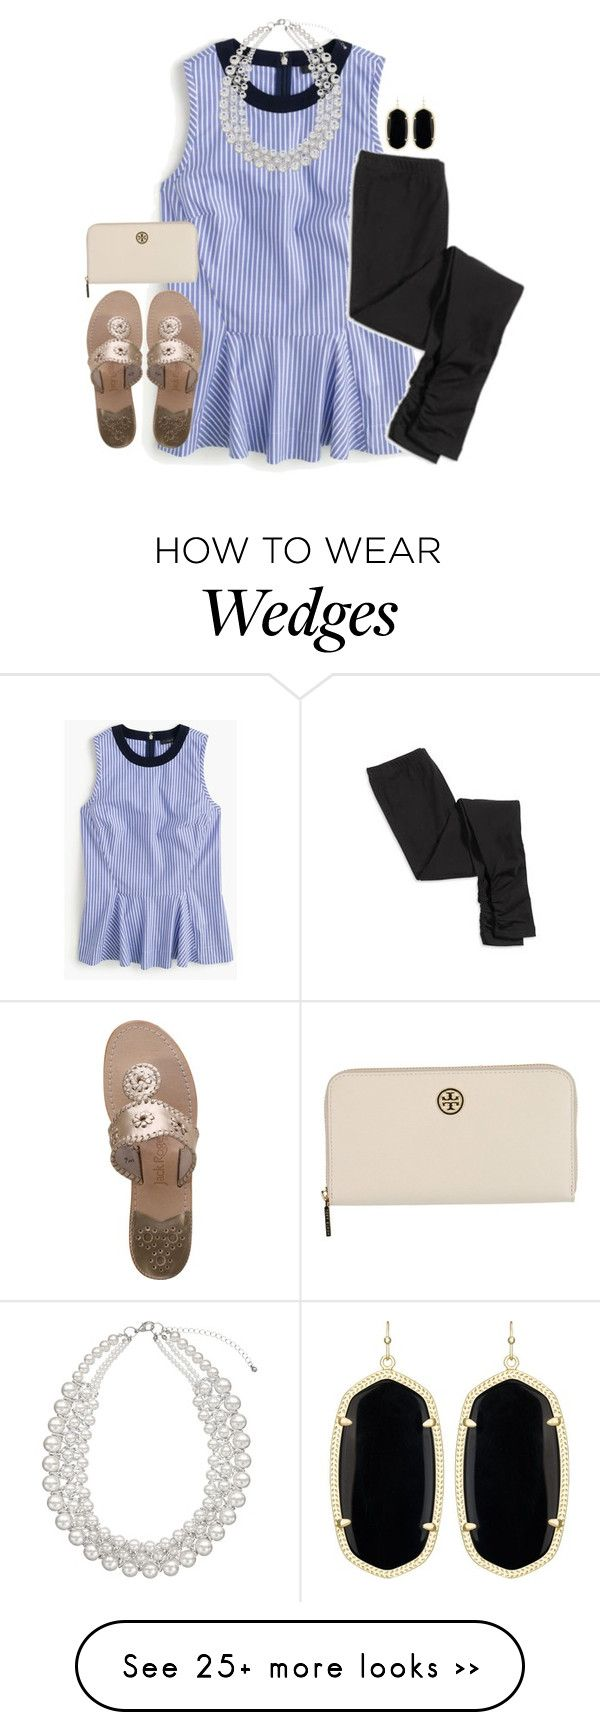 """So nervous/excited for tomorrow!!"" by disneyfashionedits on Polyvore featuring J.Crew, American Eagle Outfitters, John Lewis, Tory Burch, Kendra Scott and Jack Rogers"